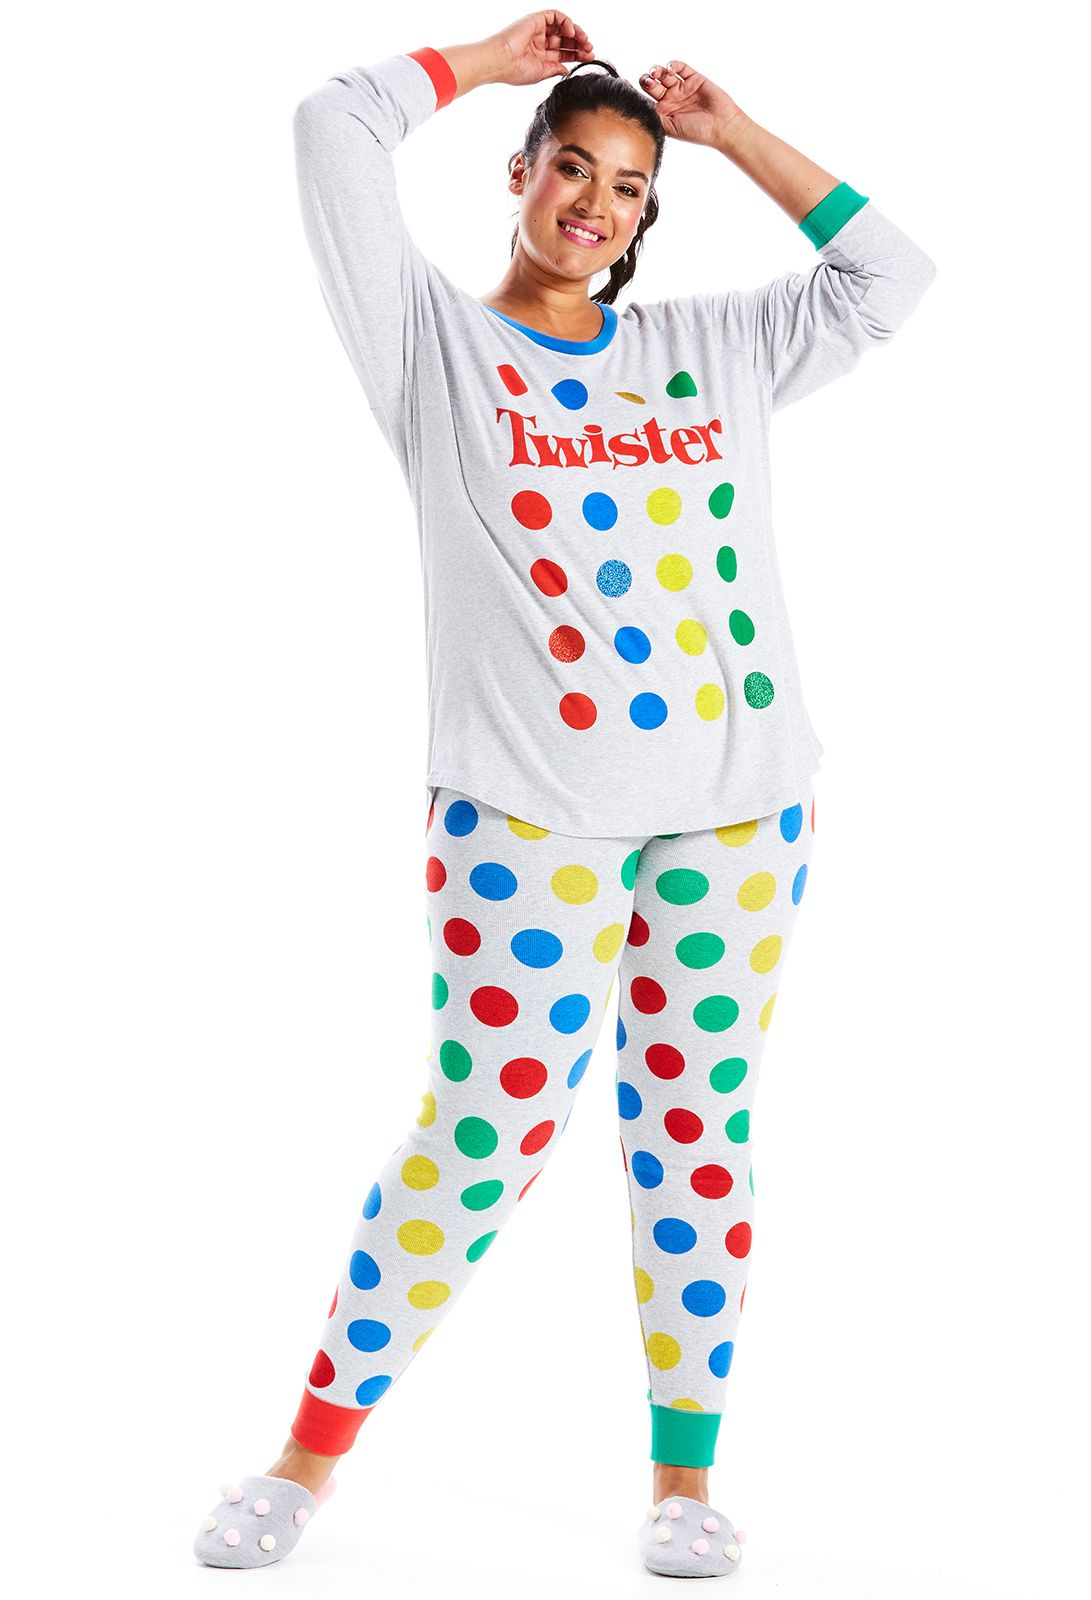 995615c737a33 Image for P.A. Plus Twister Pj Set from Peter Alexander | Plus Size ...